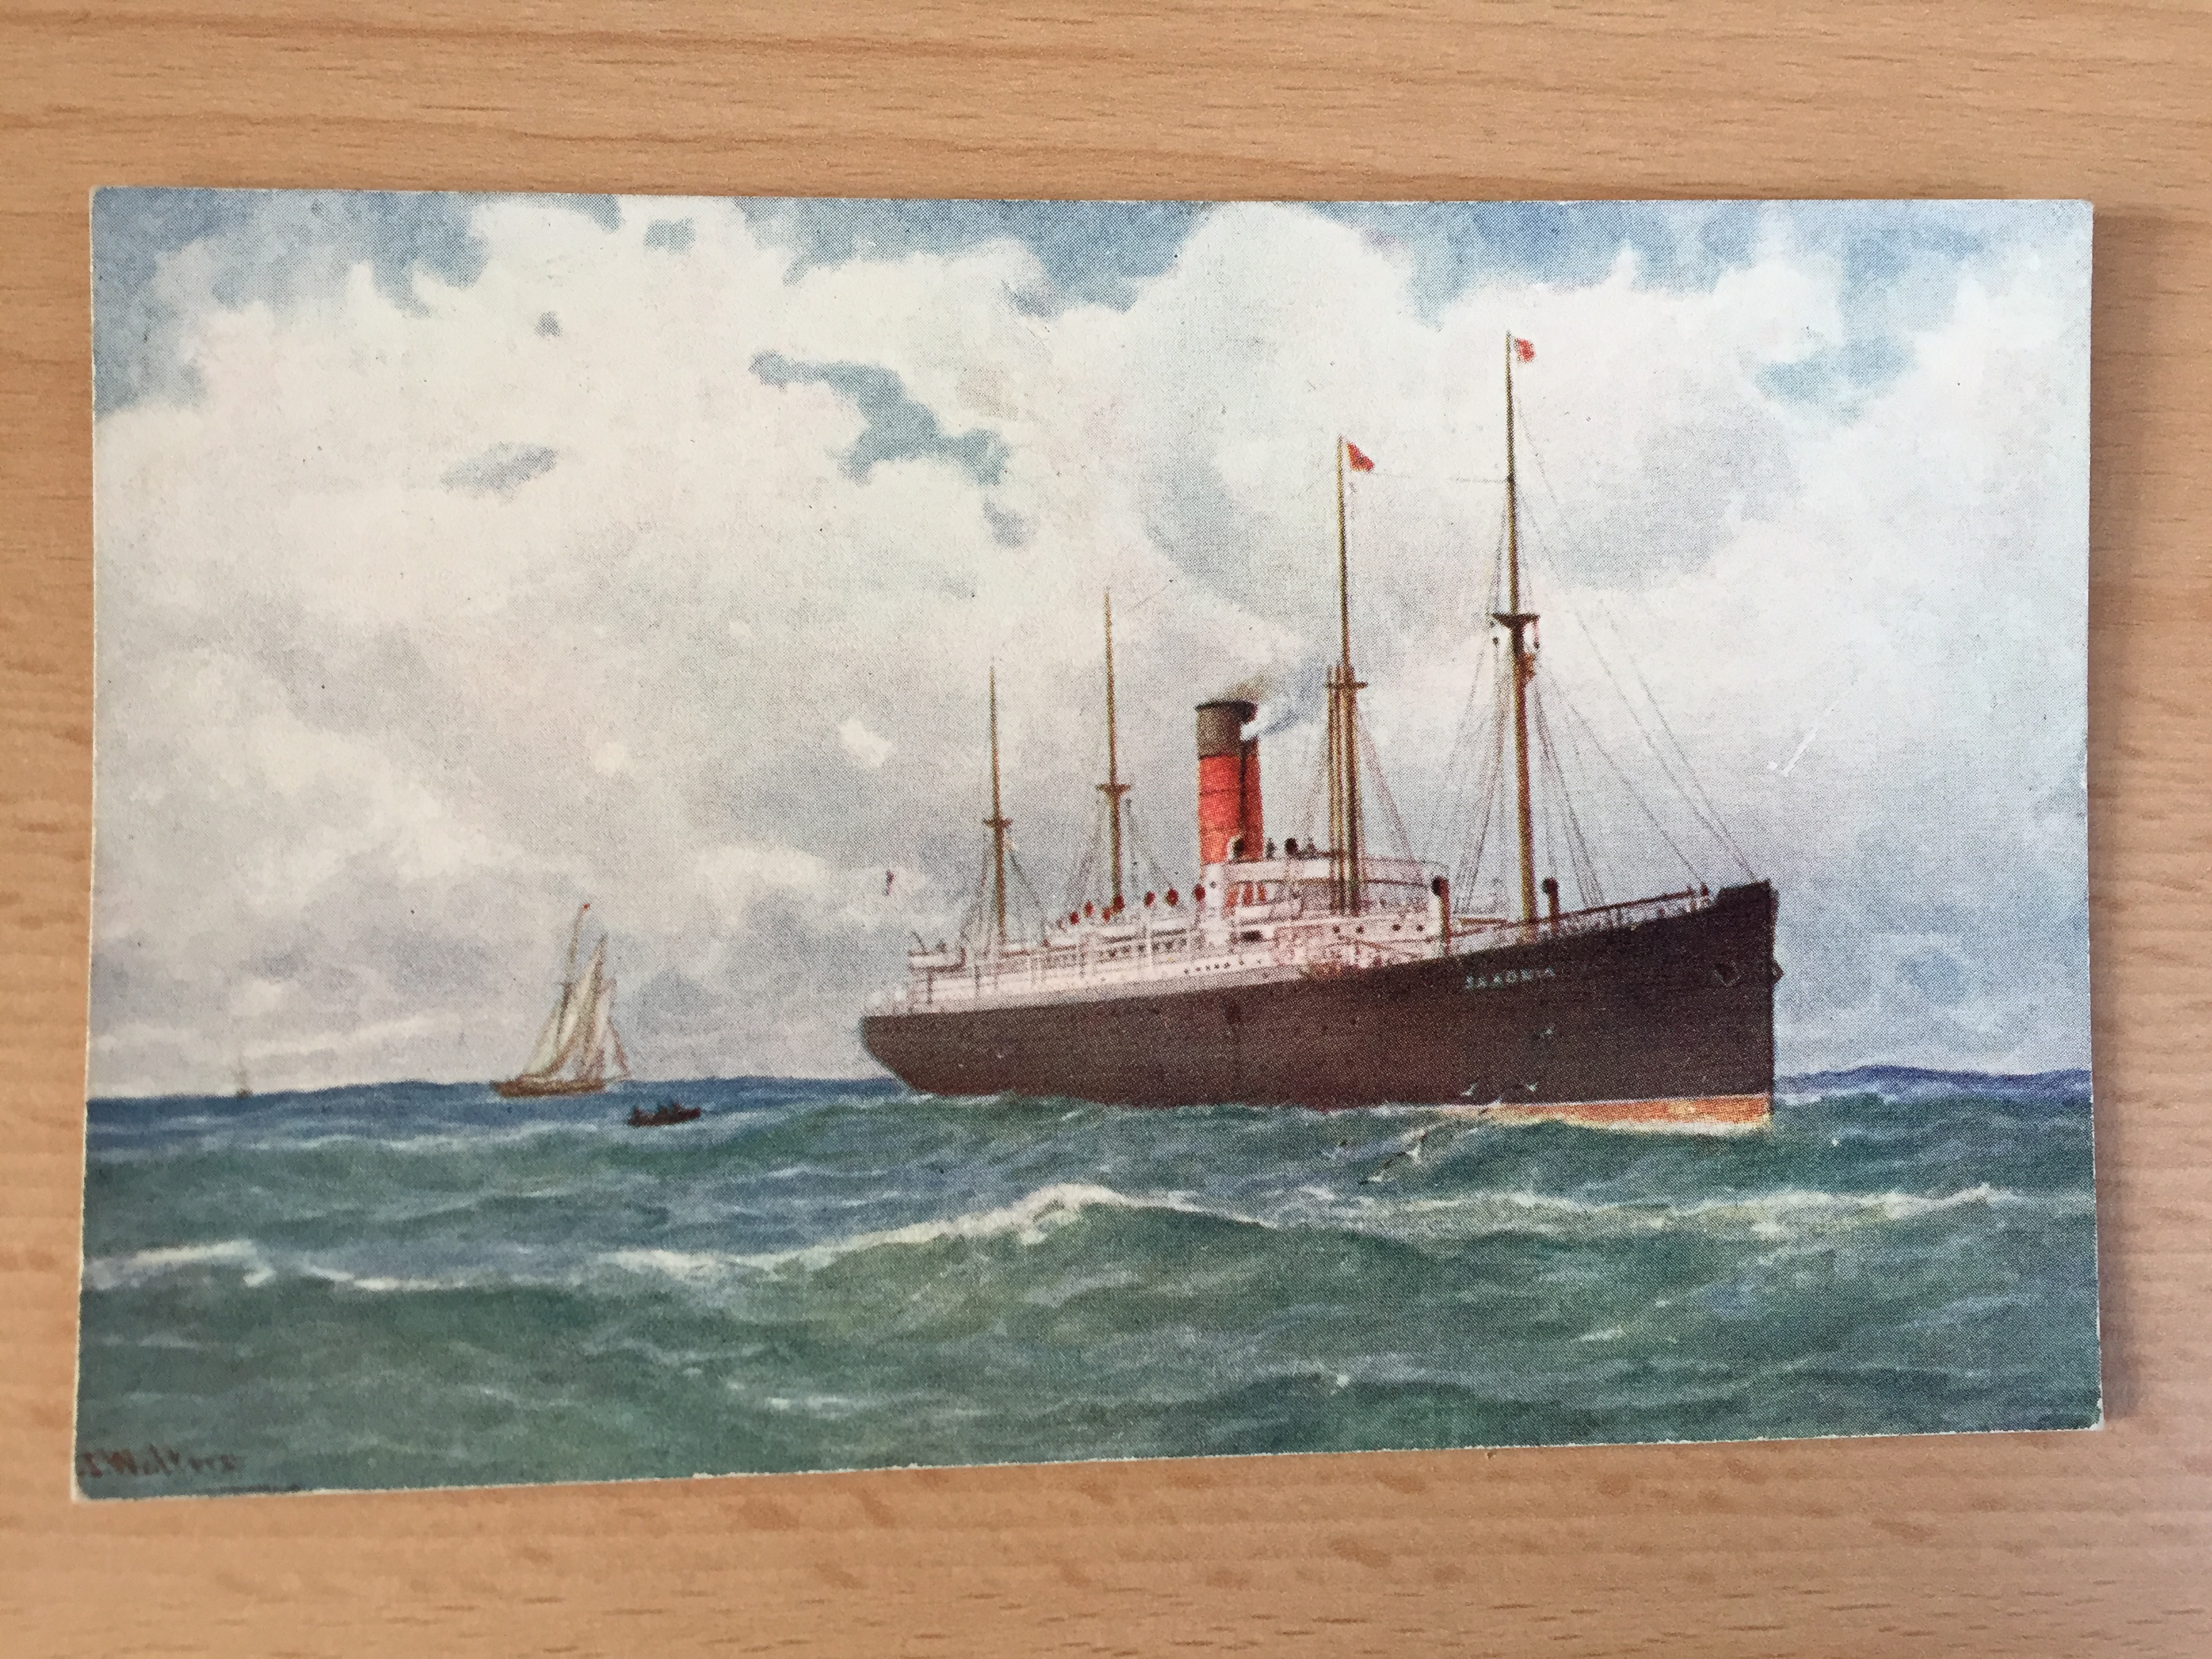 EARLY UNUSED COLOUR POSTCARD OF THE CUNARD LINE VESSEL THE SAXONIA